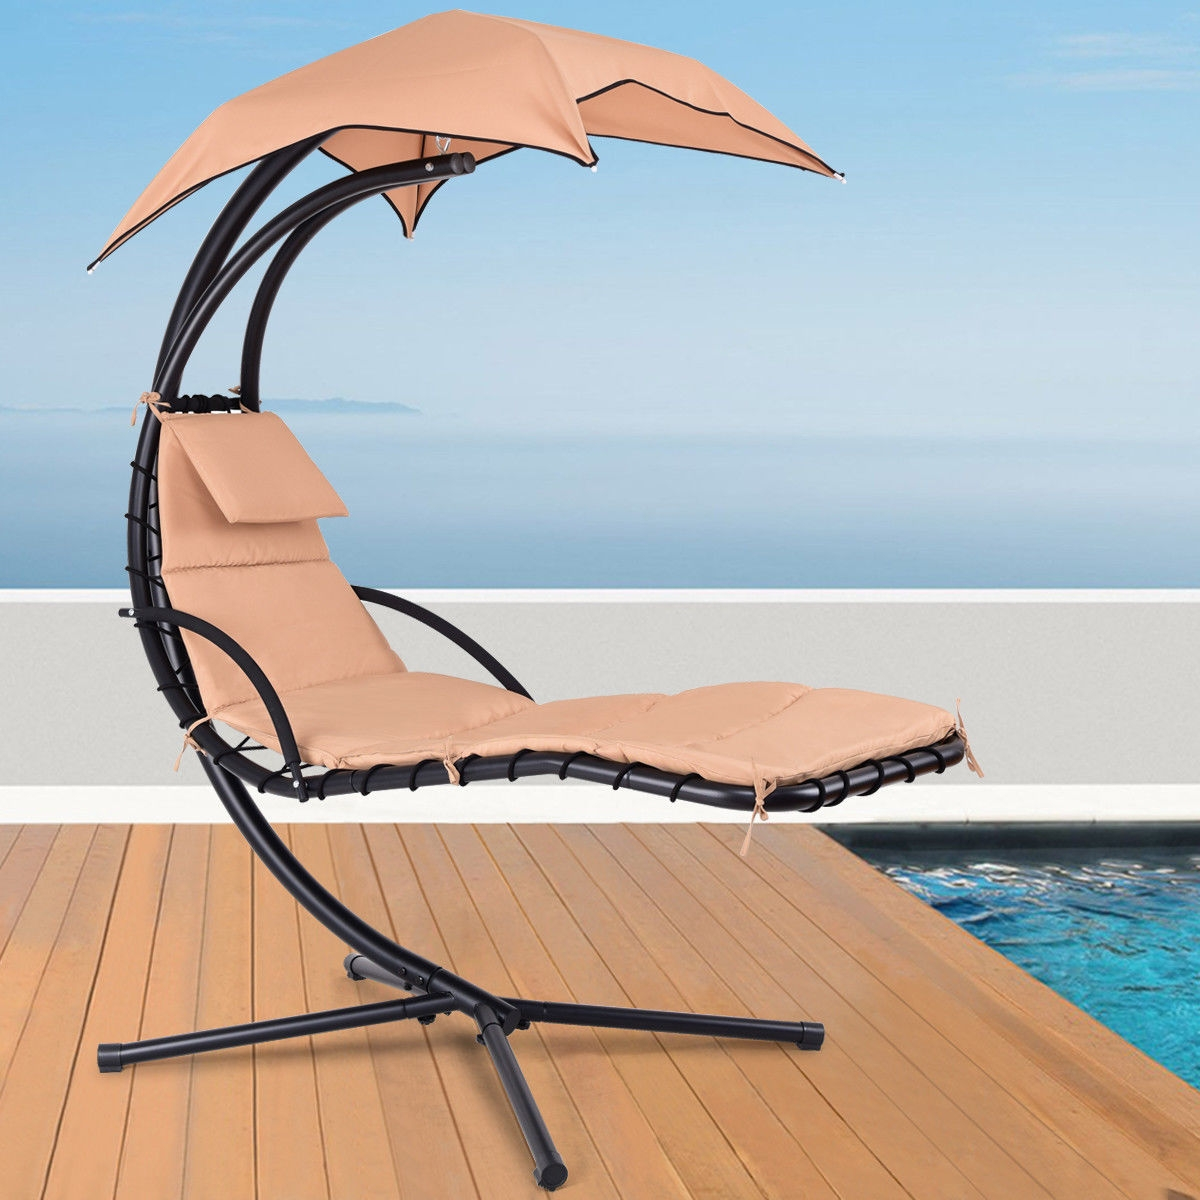 Hanging Arc Stand Porch Swing Hammock Chair w/ Canopy-Beige